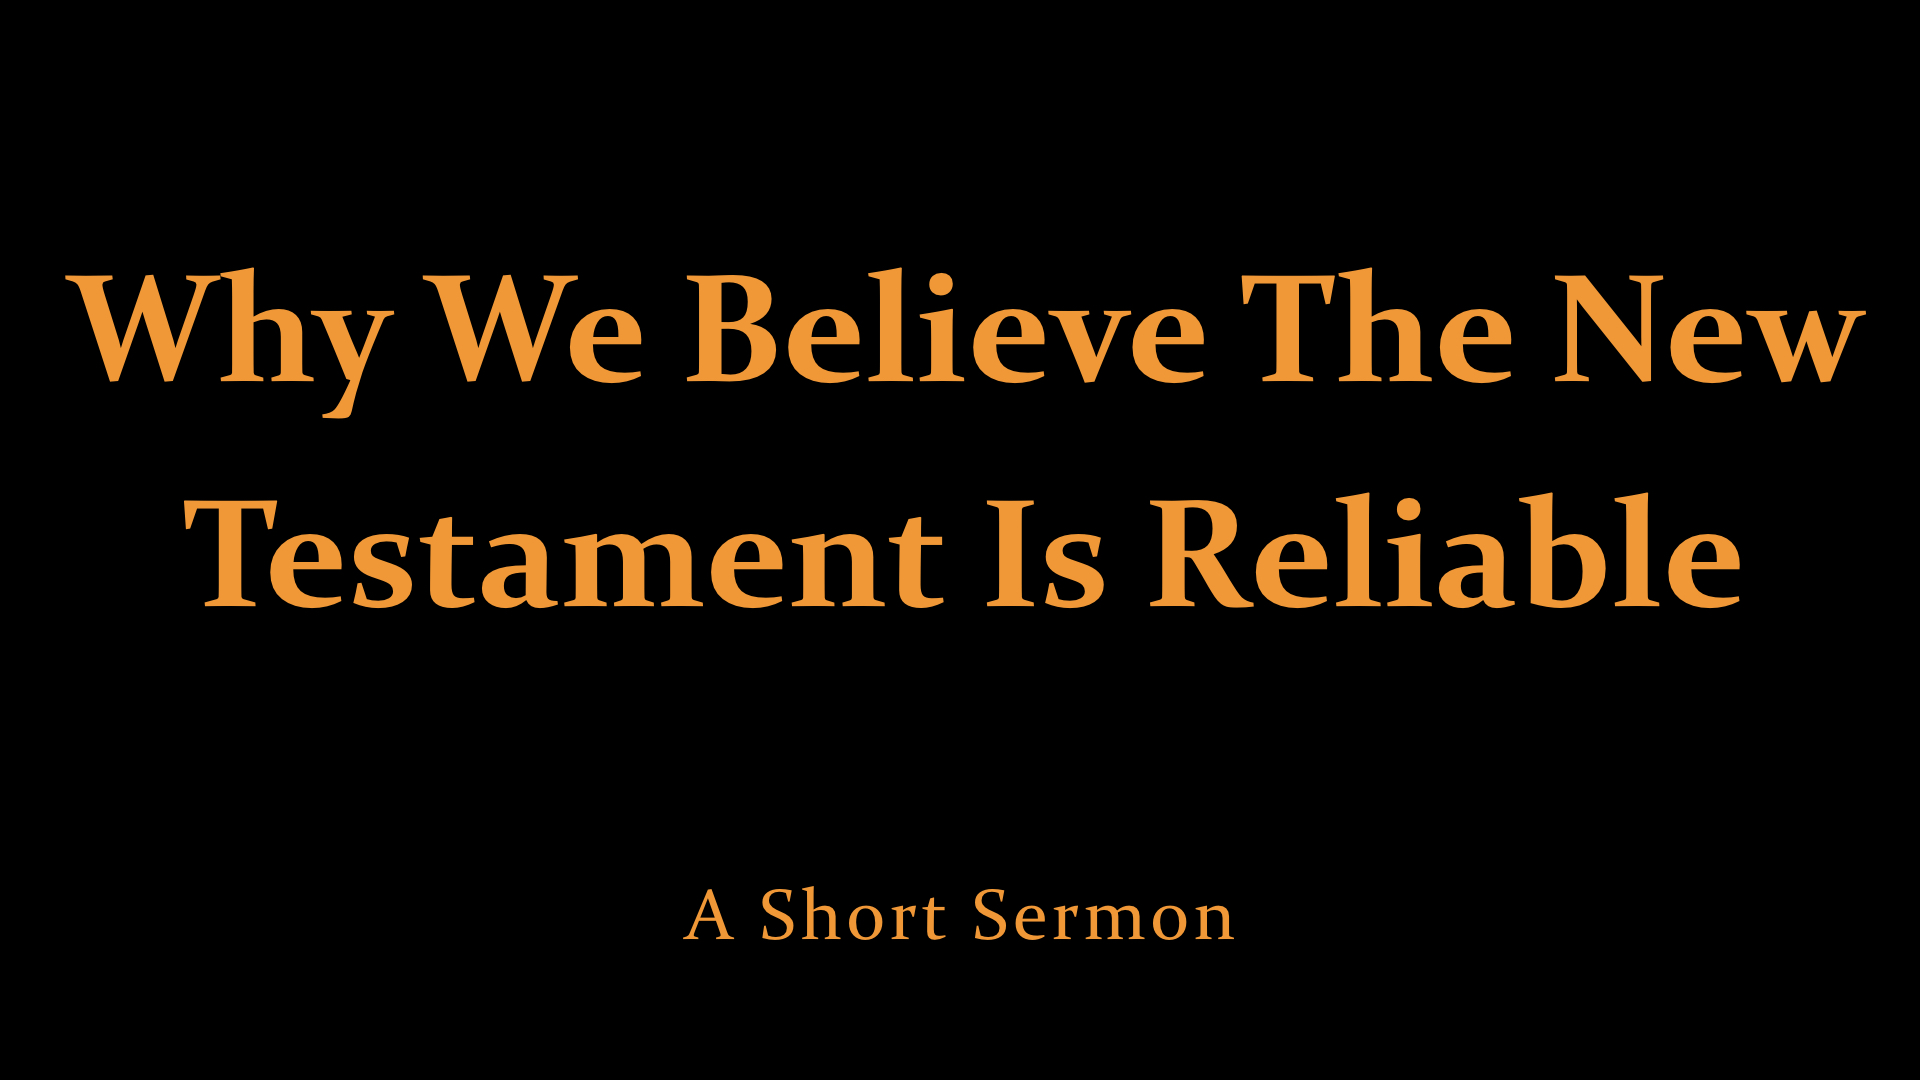 Why We Believe The New Testament Is Reliable - A Short Sermon.jpeg